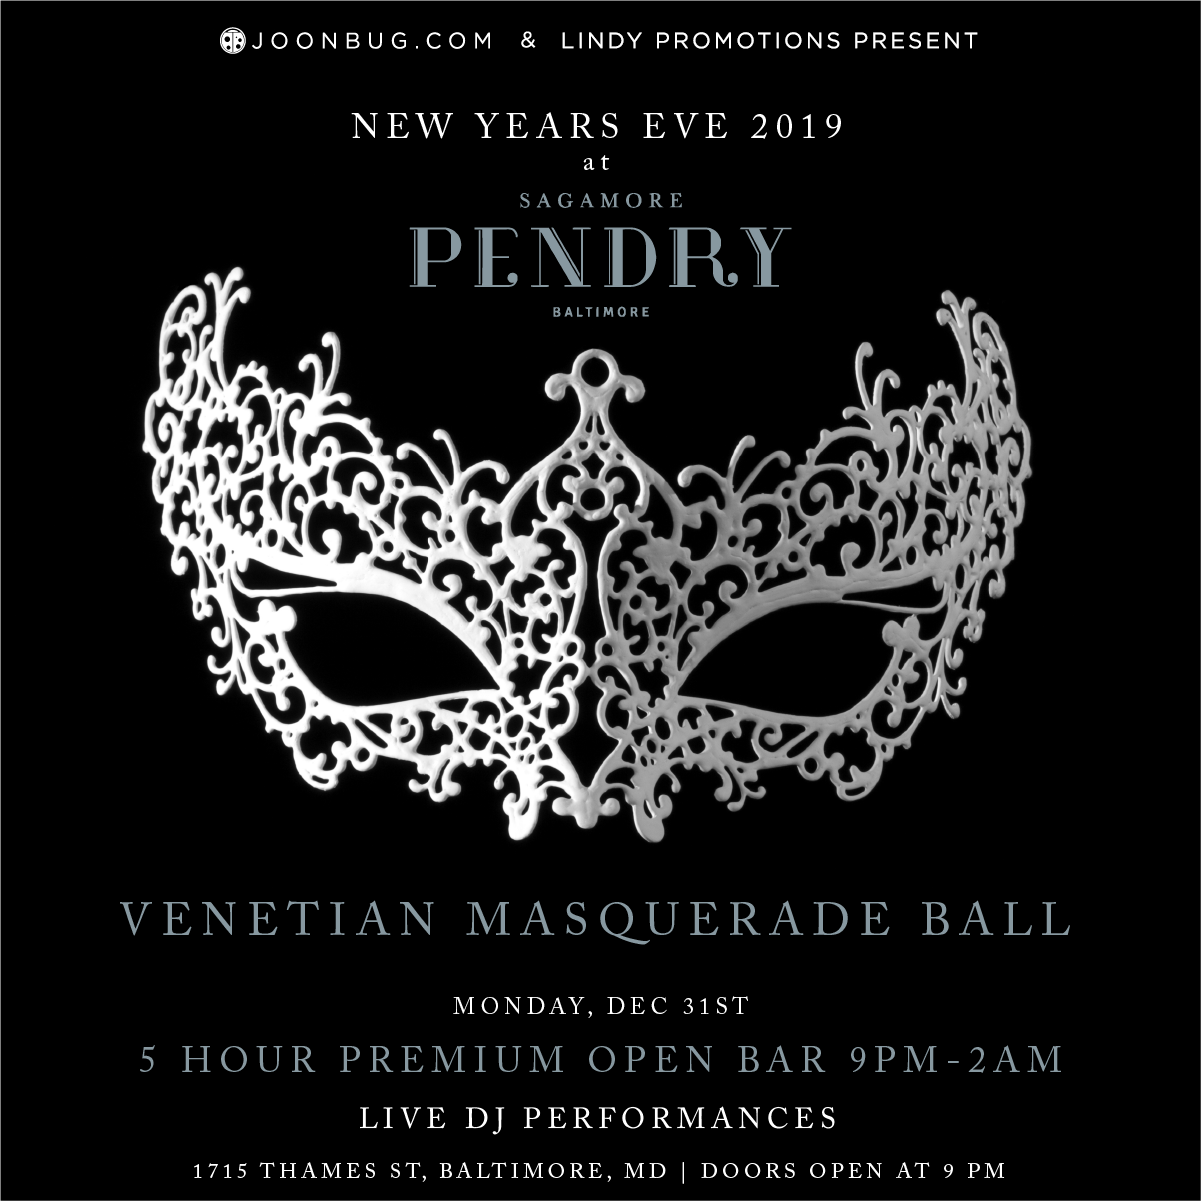 Sagamore Pendry Baltimore New Years Flyer